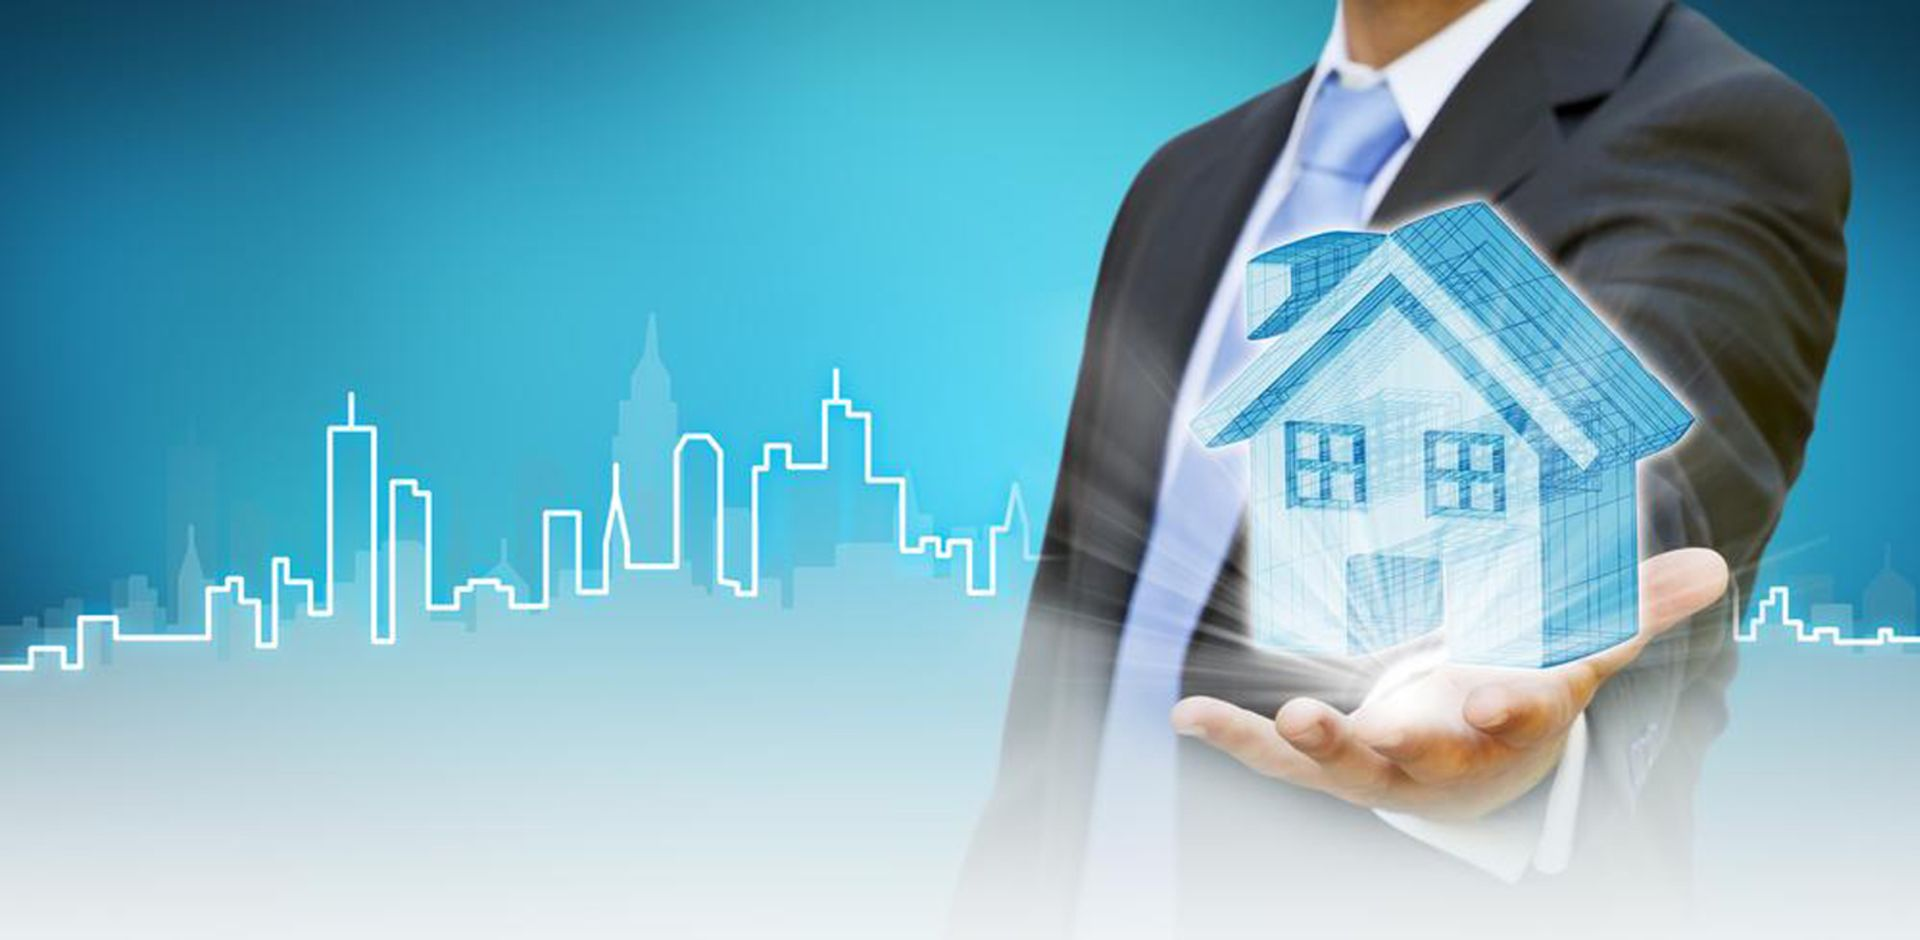 In Today's Connected World, Why Should I Use A Realtor?